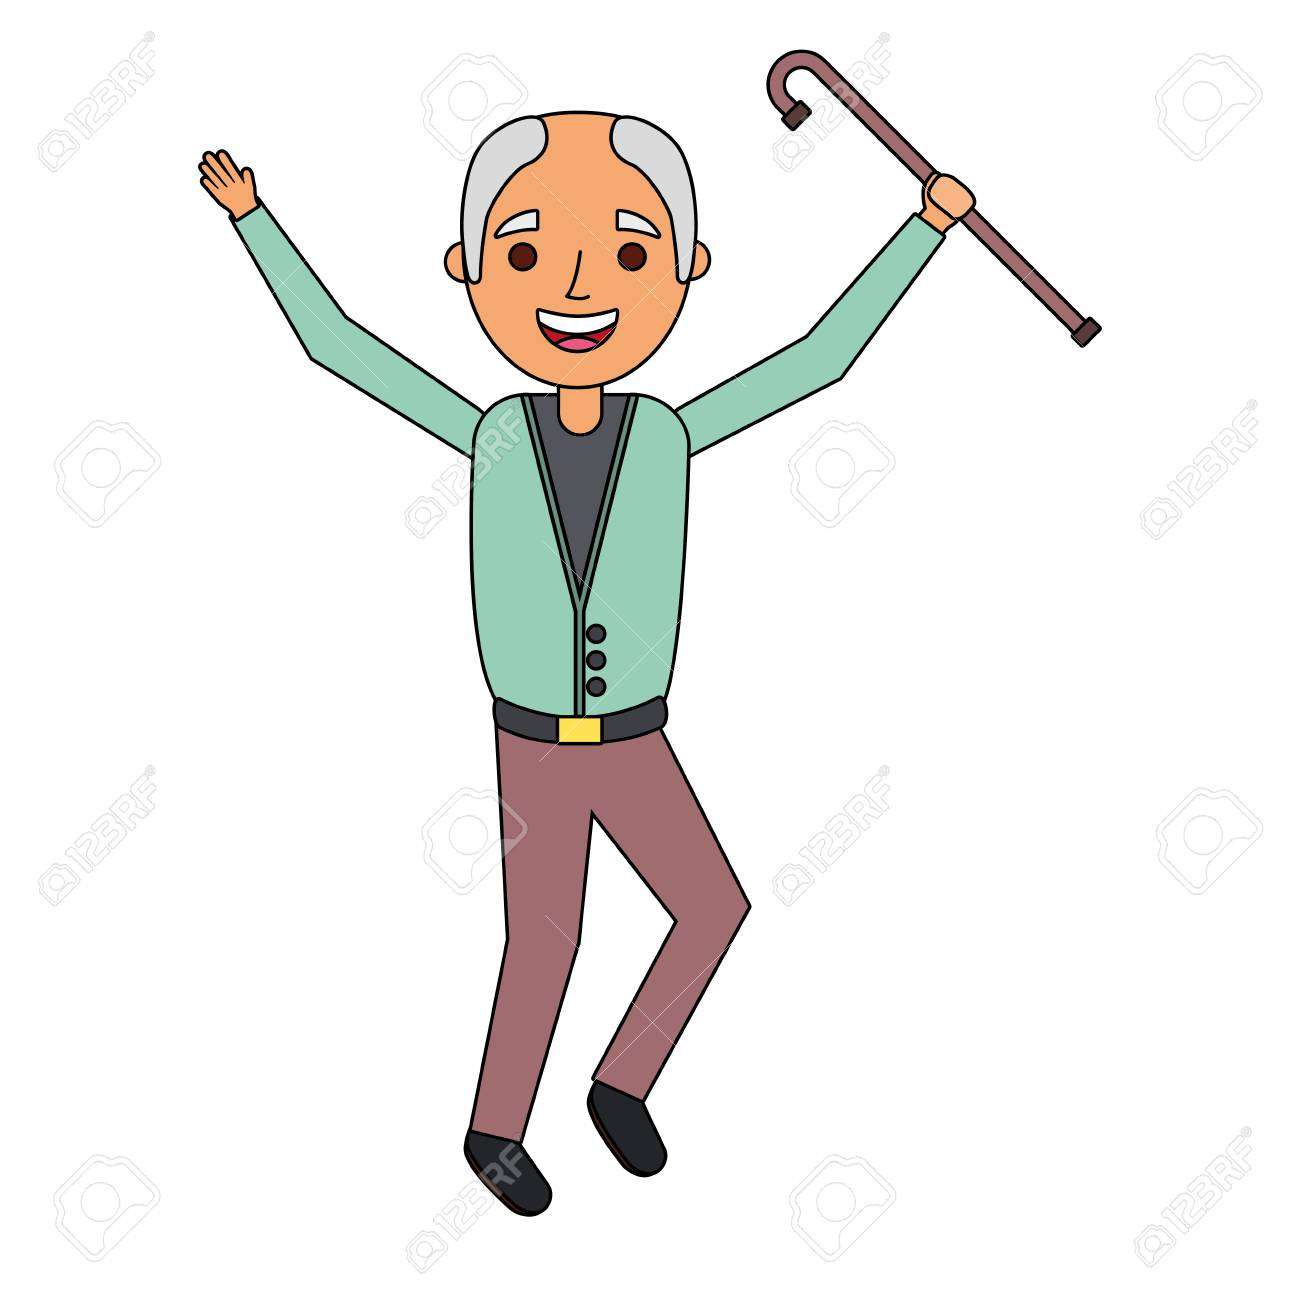 old man happy grandfather hands up character vector illustration.